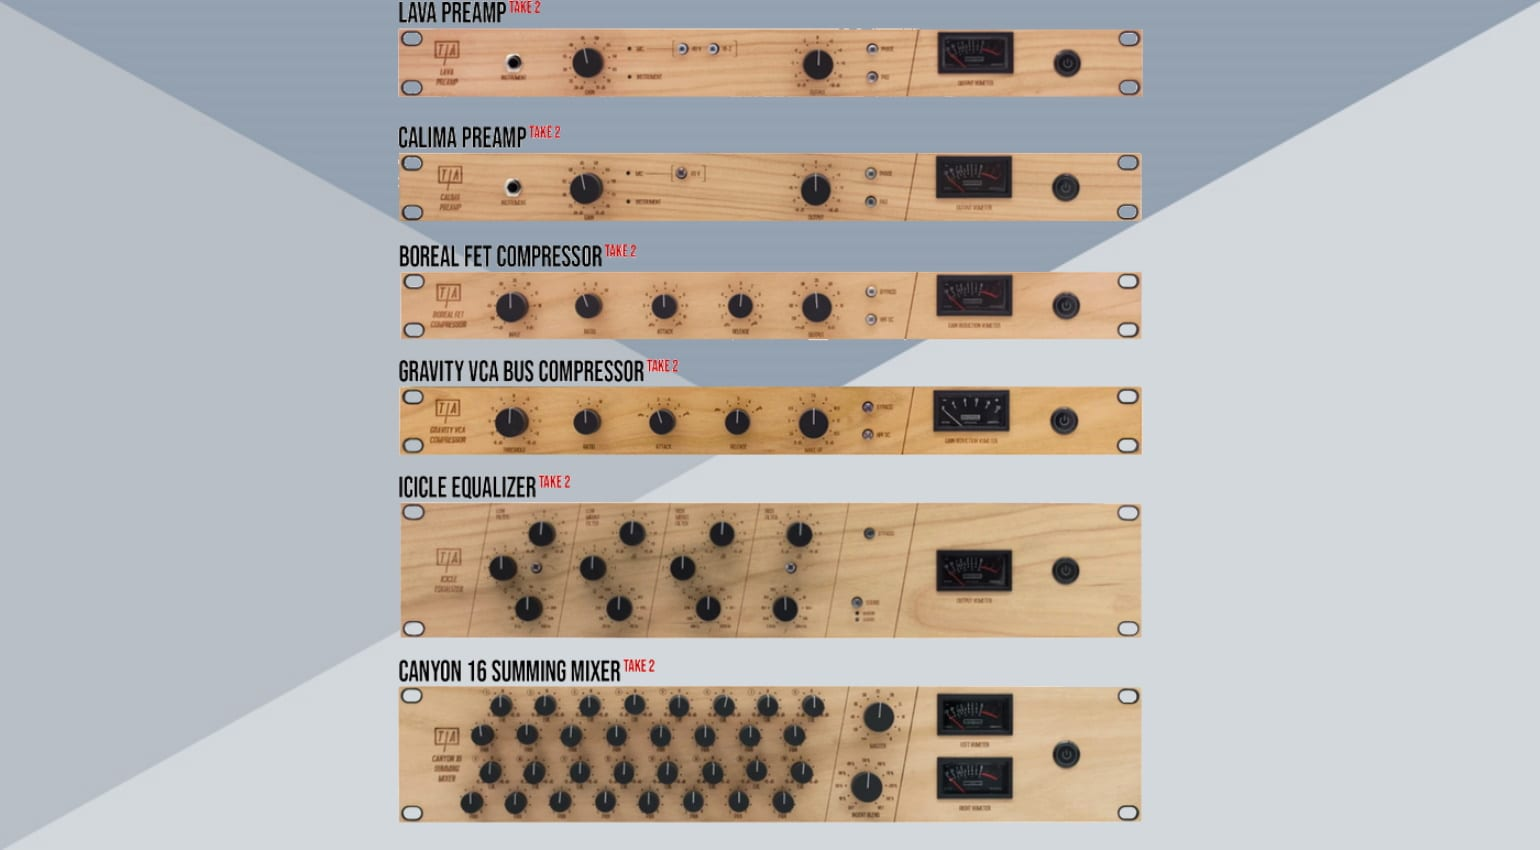 Tierra Audio Analog Gear Kickstarter